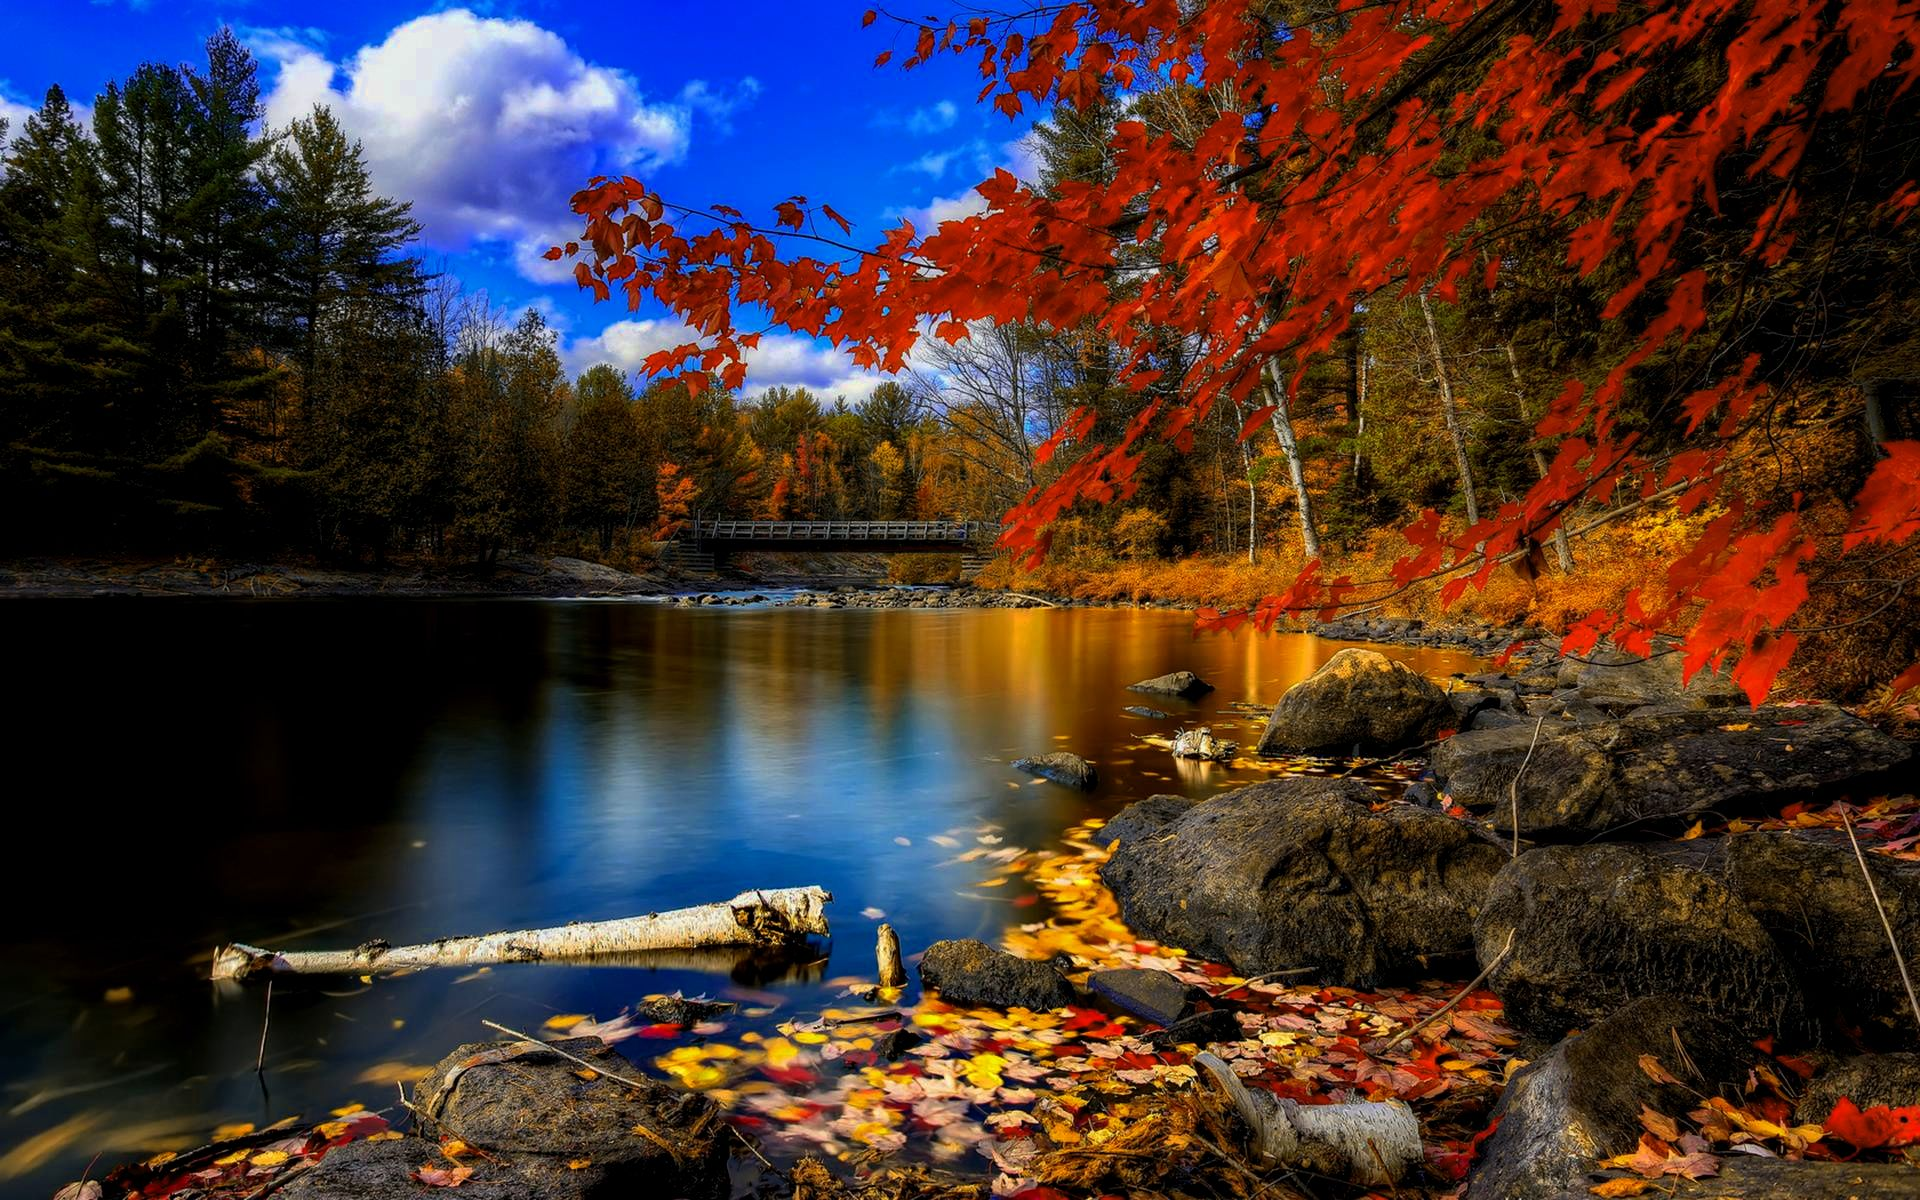 wallpaper autumn creative - photo #19